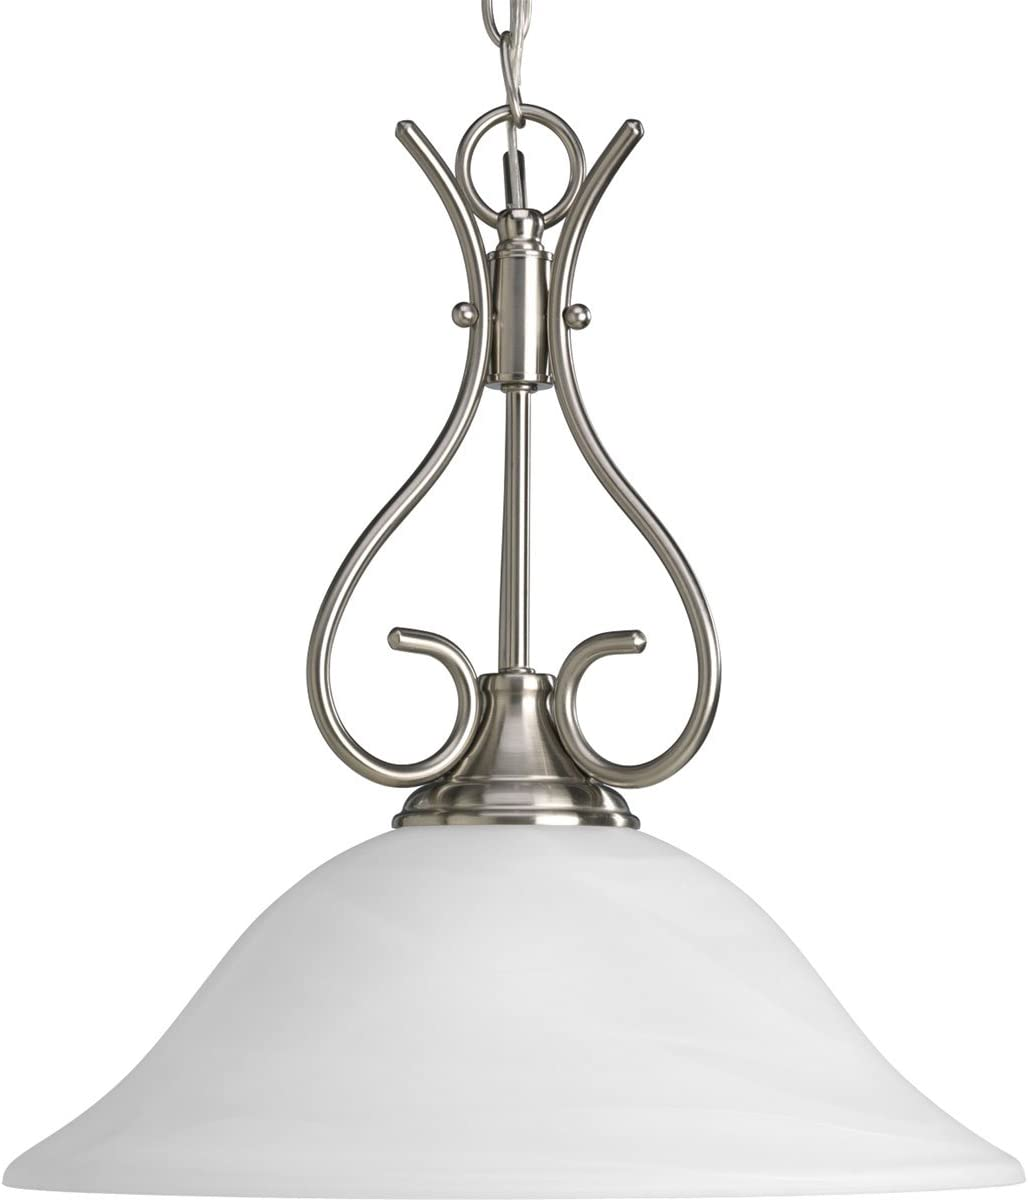 Progress Lighting P5091-09 Alabaster Glass Pendants, 15-3/8-Inch Diameter x 16-1/2-Inch Height, Brushed Nickel